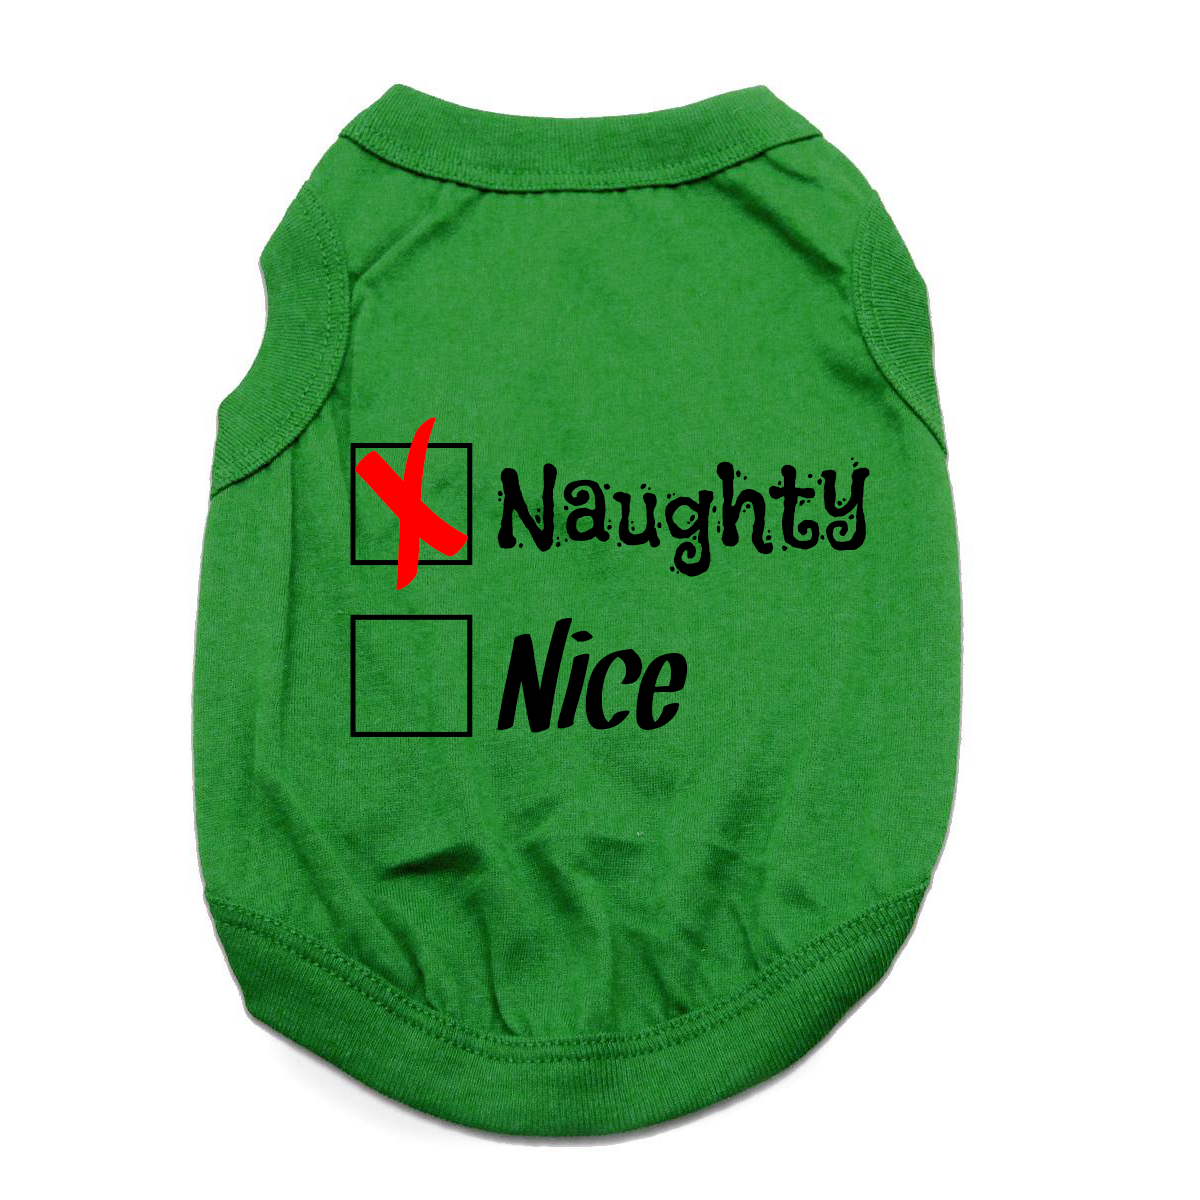 Naughty or Nice Dog Shirt - Naughty Green